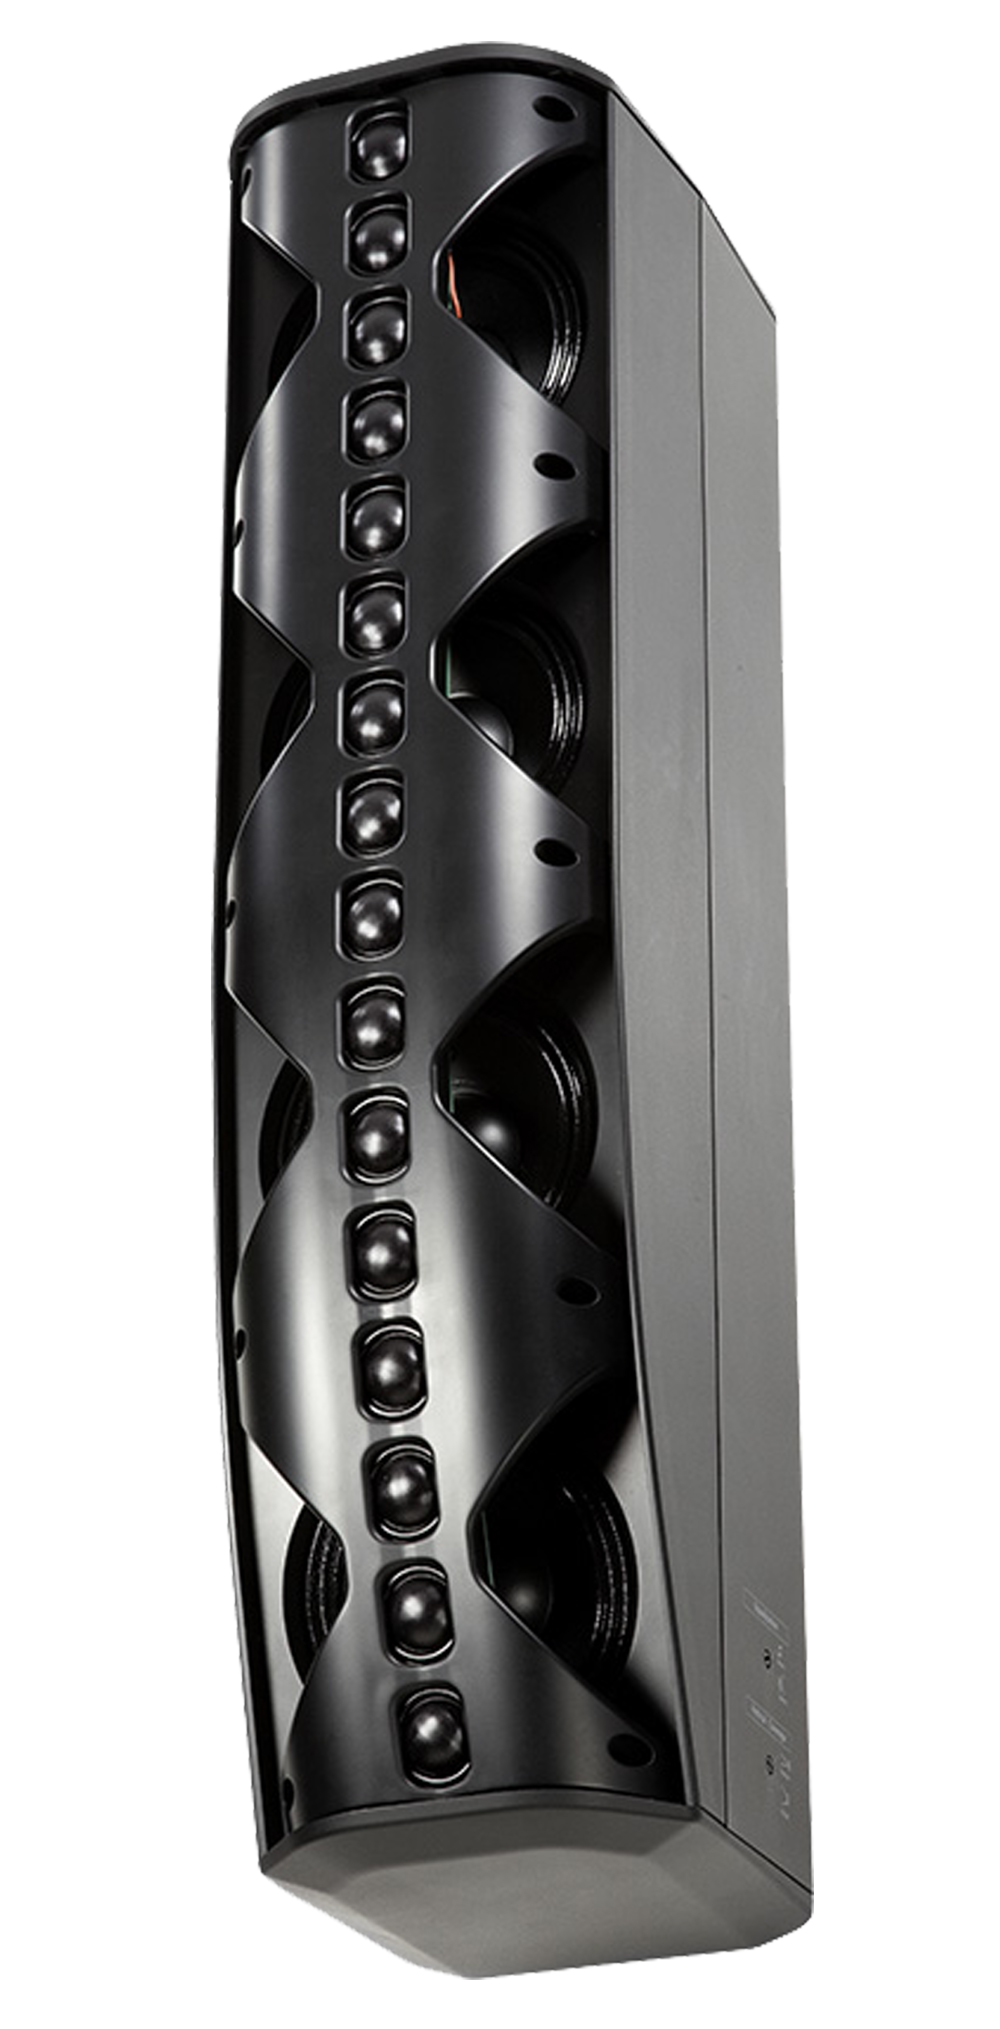 Constant Beamwidth Technology™ Two-Way Line Array Column with Asymmetrical Vertical Cove